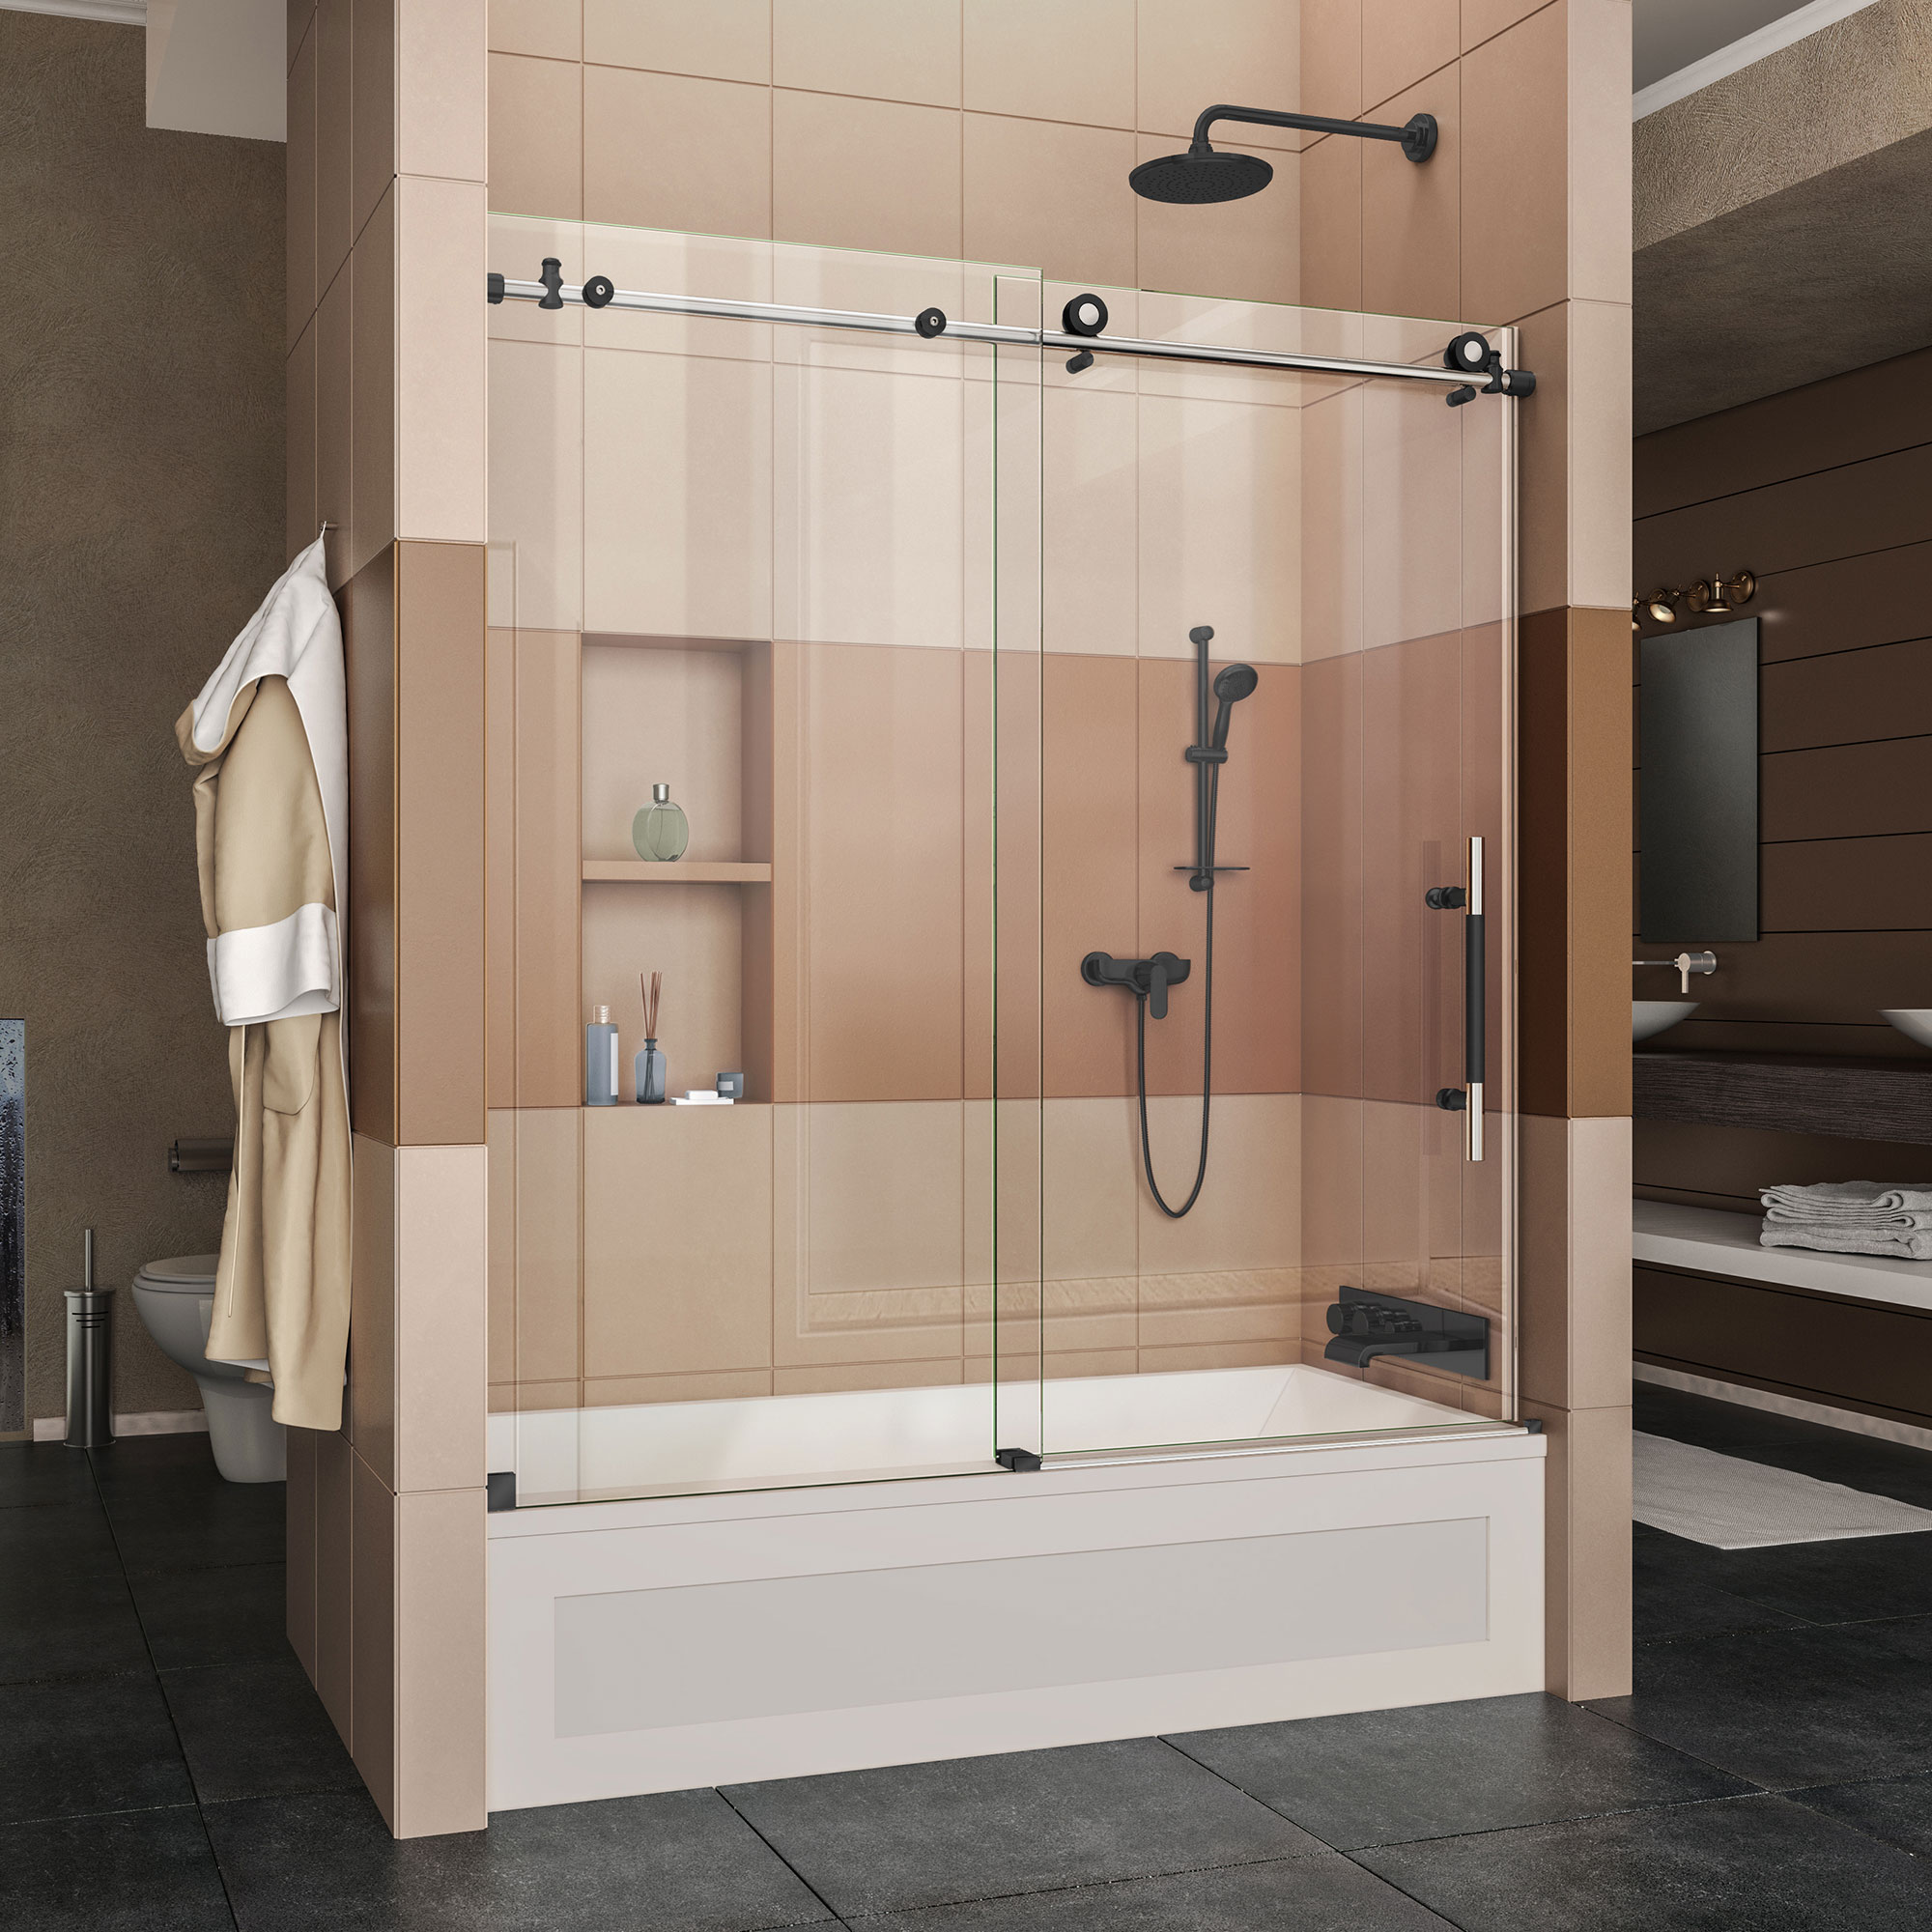 DreamLine Enigma-XT 34 1/2 in. D x 60 3/8 in. W x 76 in. H Fully Frameless Sliding Shower Enclosure in Tuxedo Finish